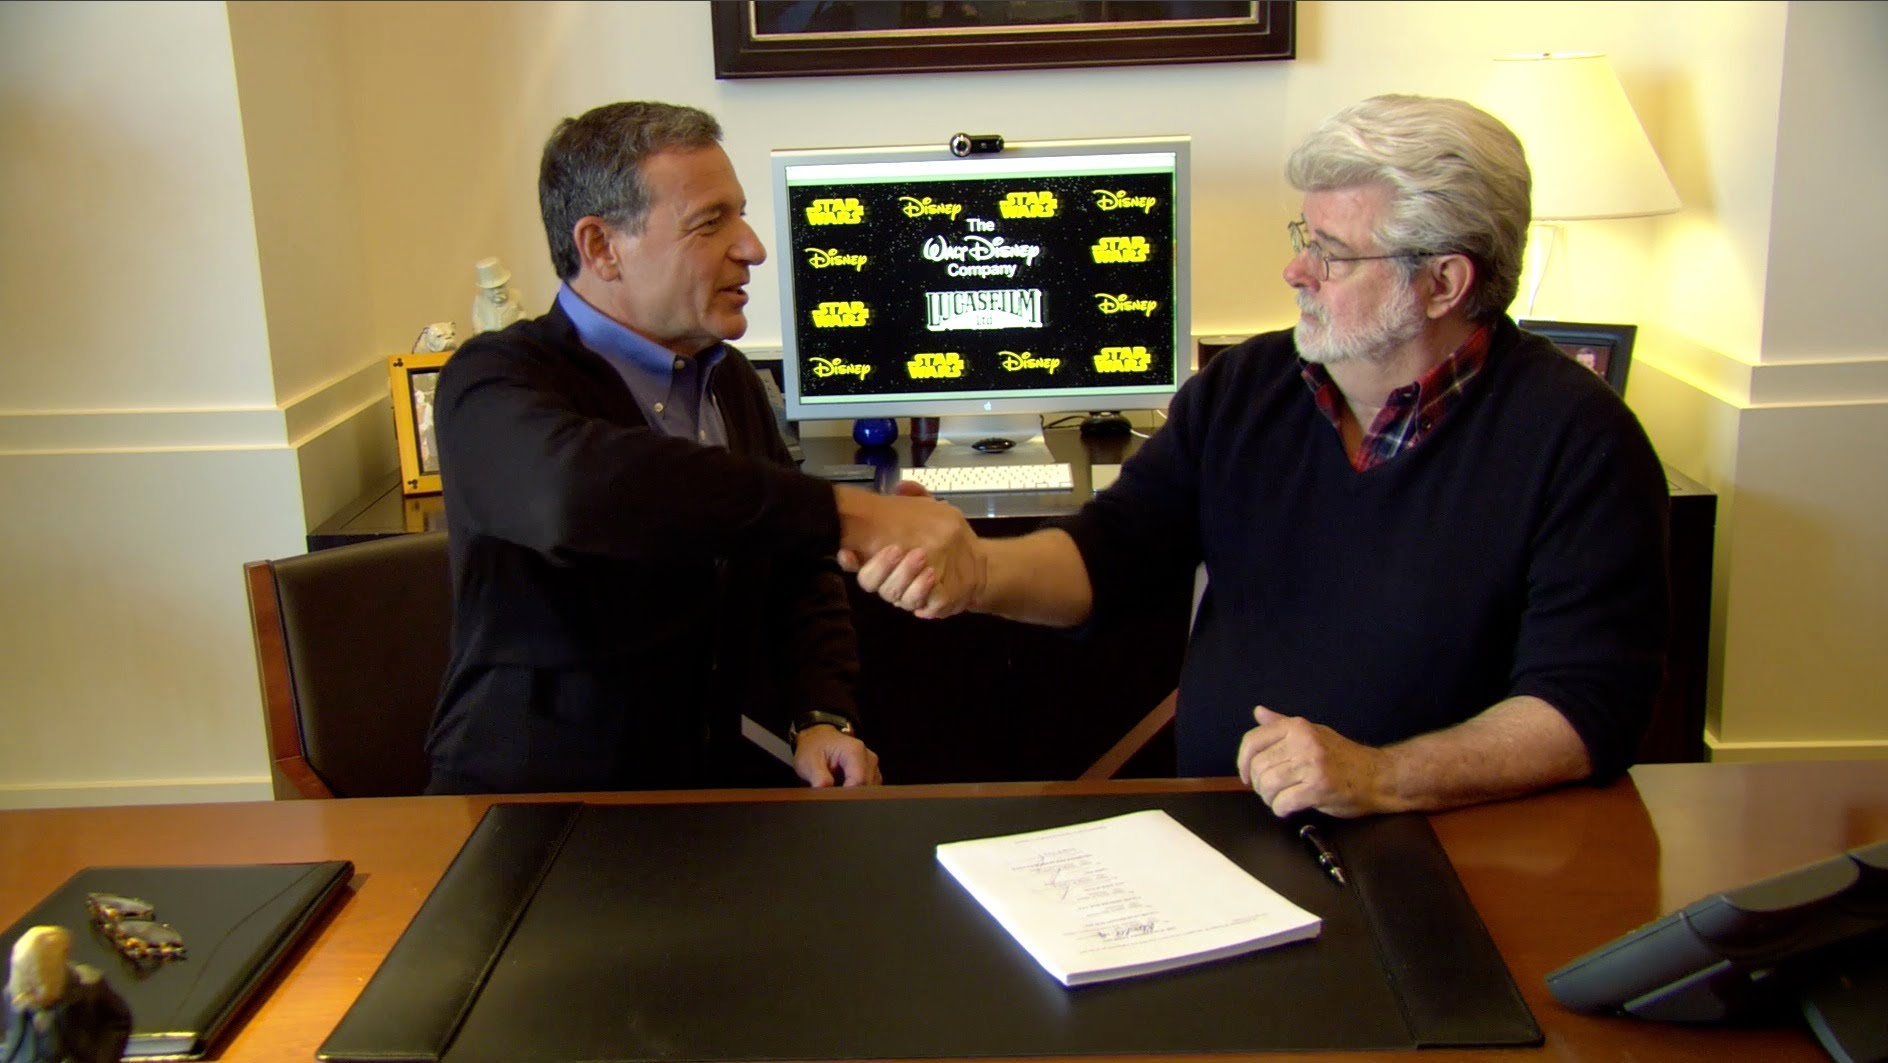 Walt Disney CEO, Bob Iger and producer George Lucas shakes hand during sign and discussion about Disney Lucasfilm purchase.